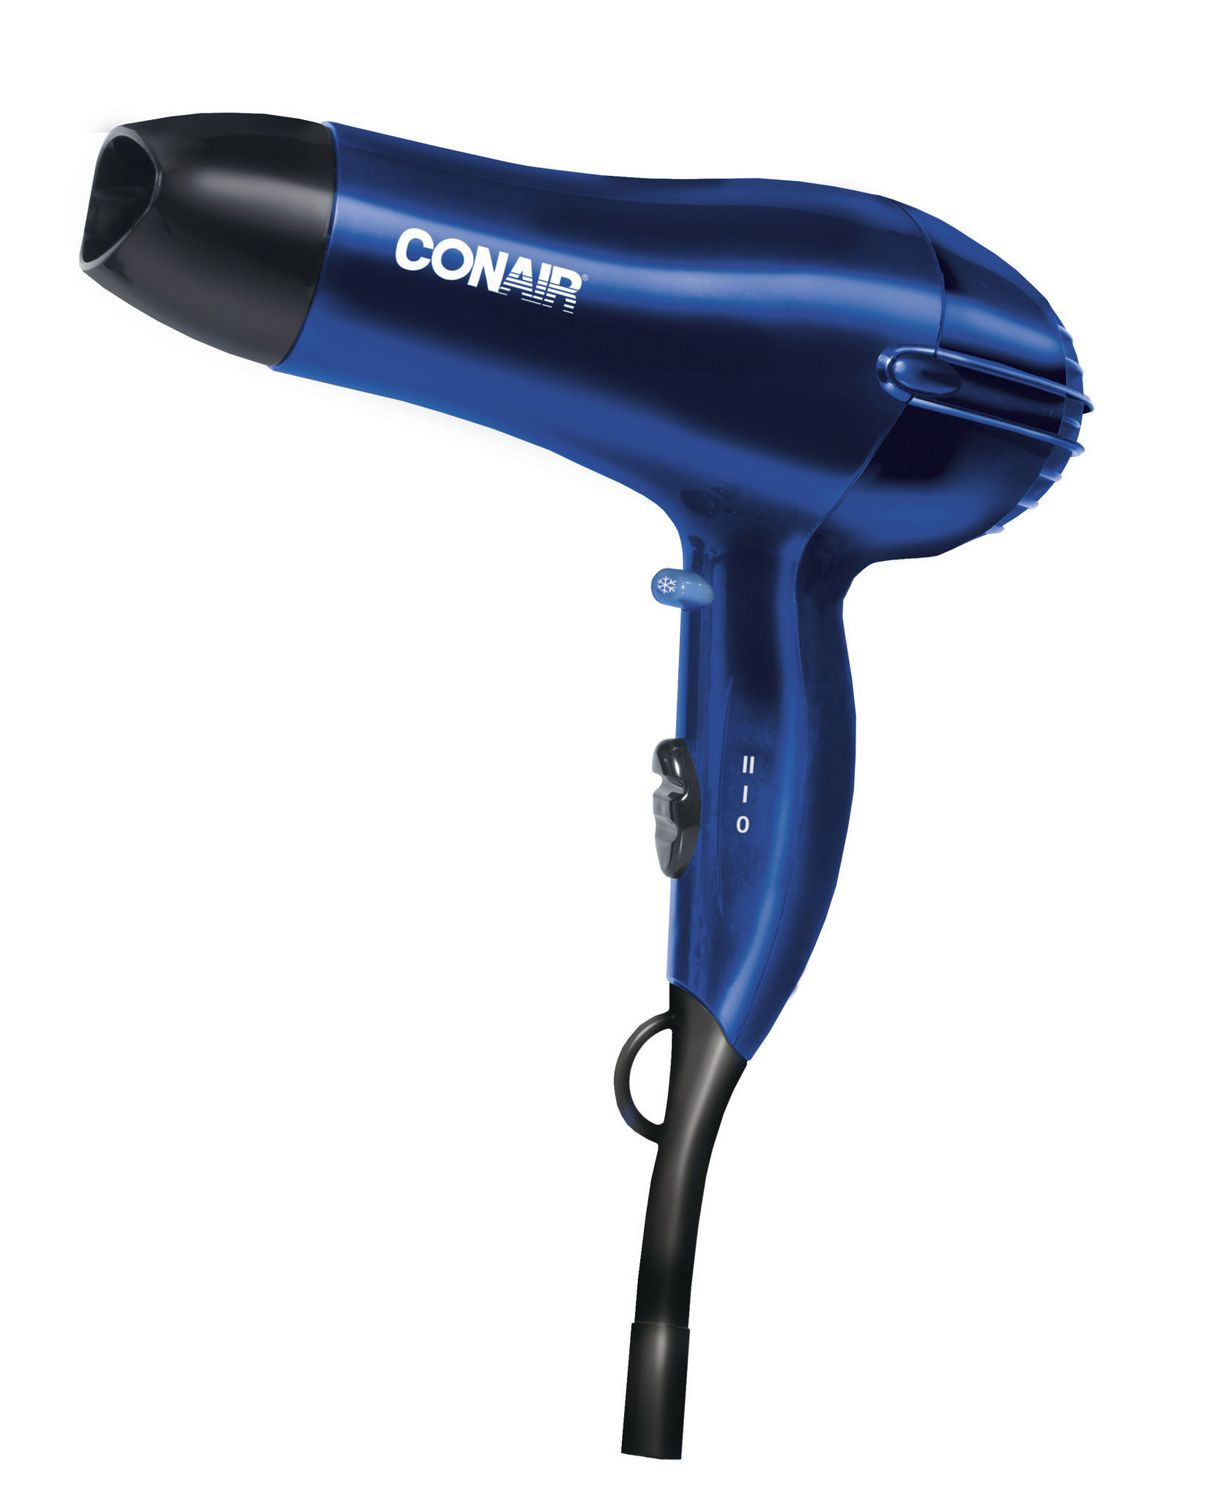 review hair infiniti infinity pro by or in touch introducing packed woman a soft features watt styler riddle the conair beauty all man dryer tourmaline with any and handy